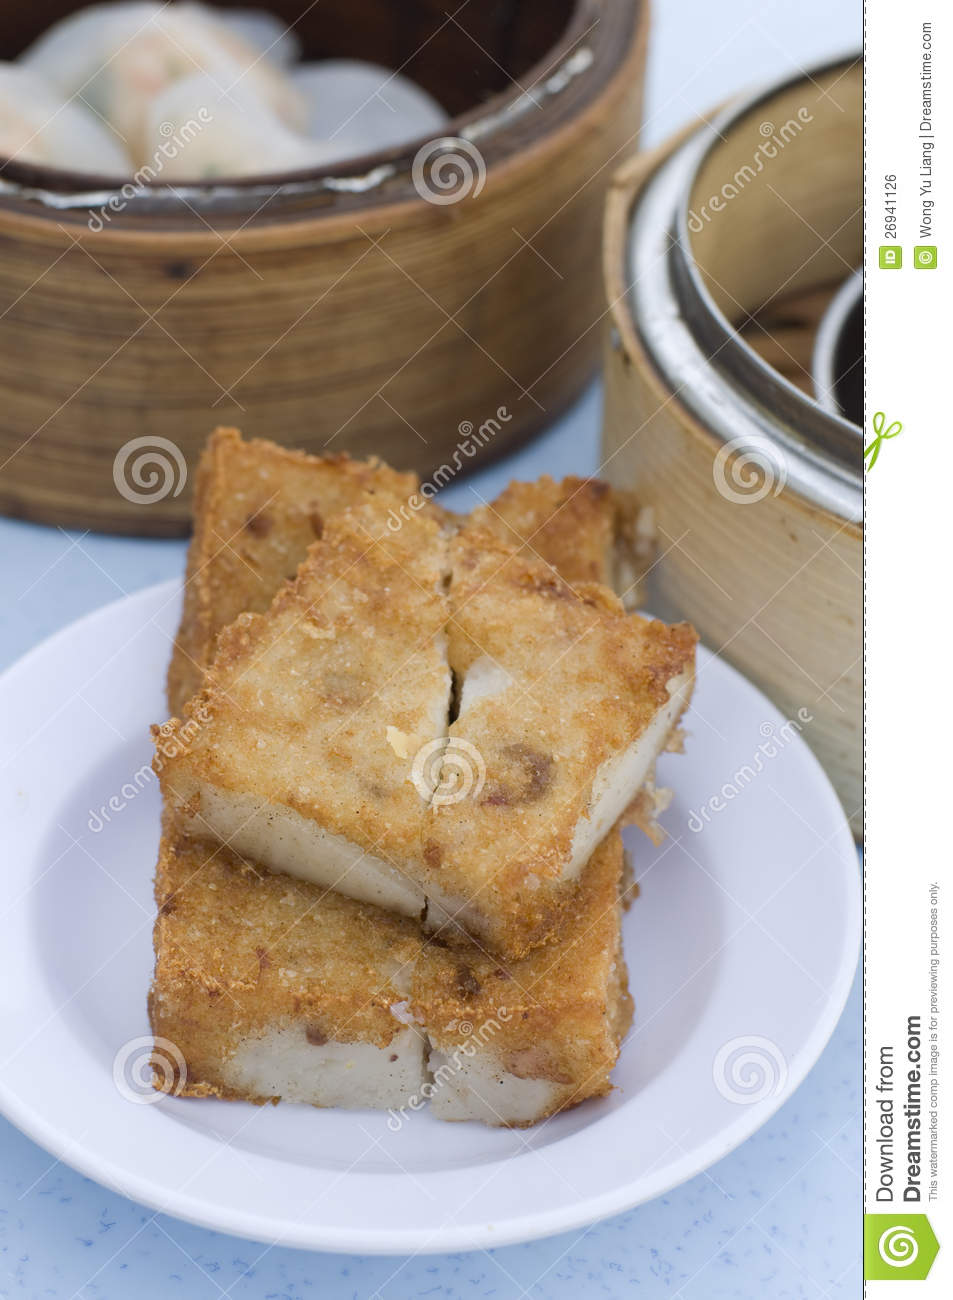 Pan Fried Taro Cake